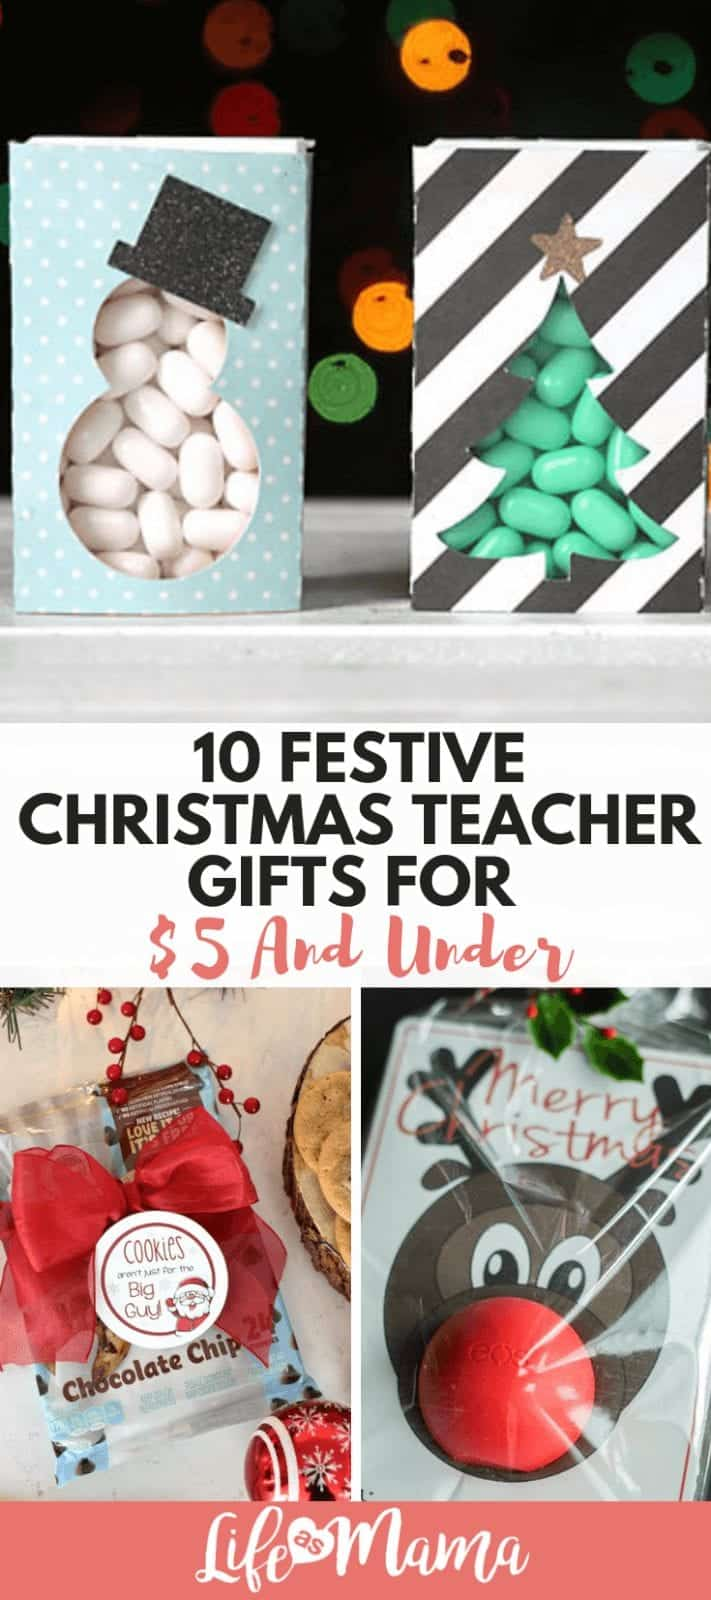 10 Festive Christmas Teacher Gifts For $5 And Under